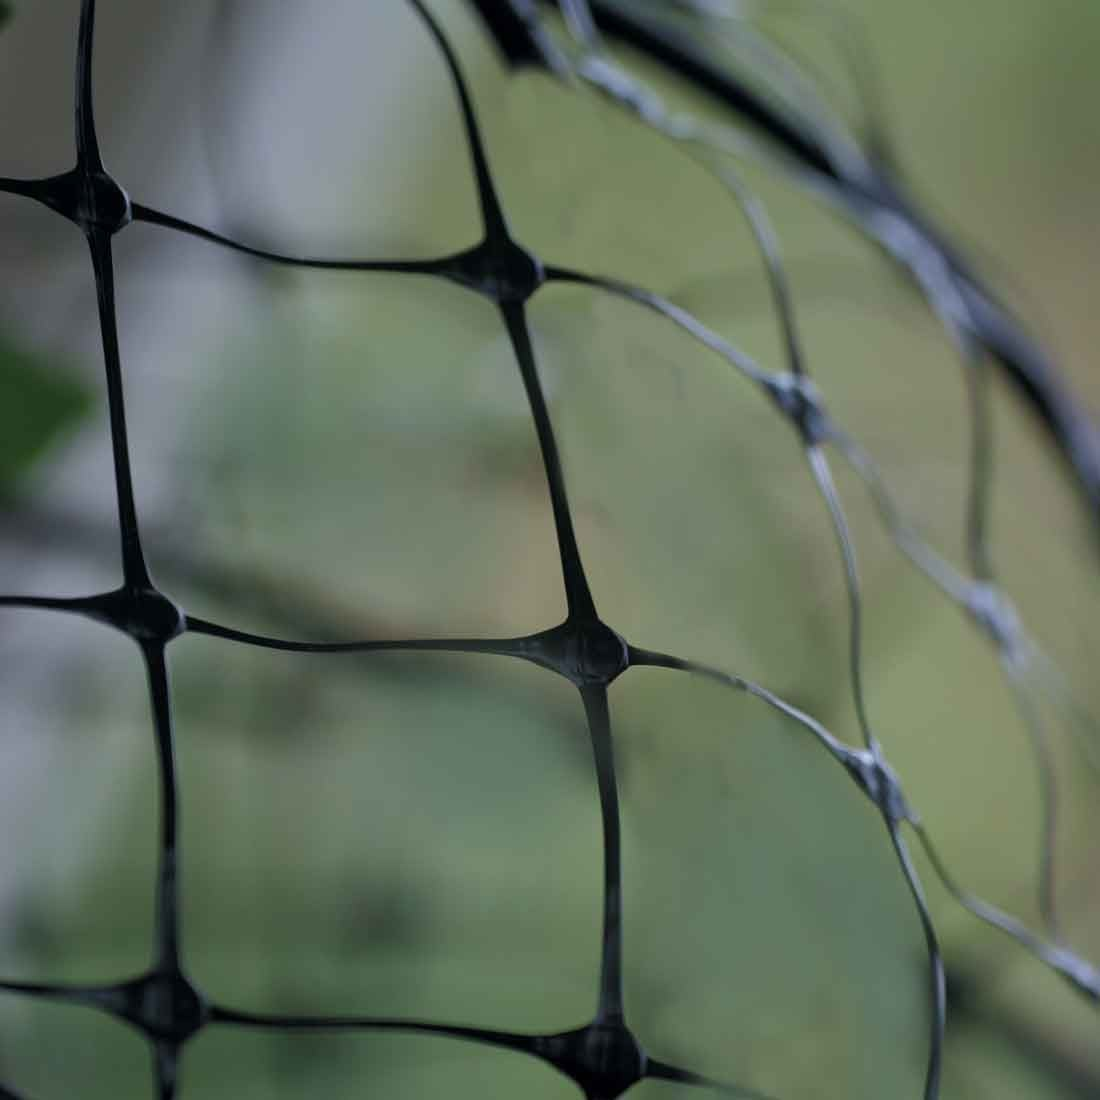 Rabbit & Deer Netting